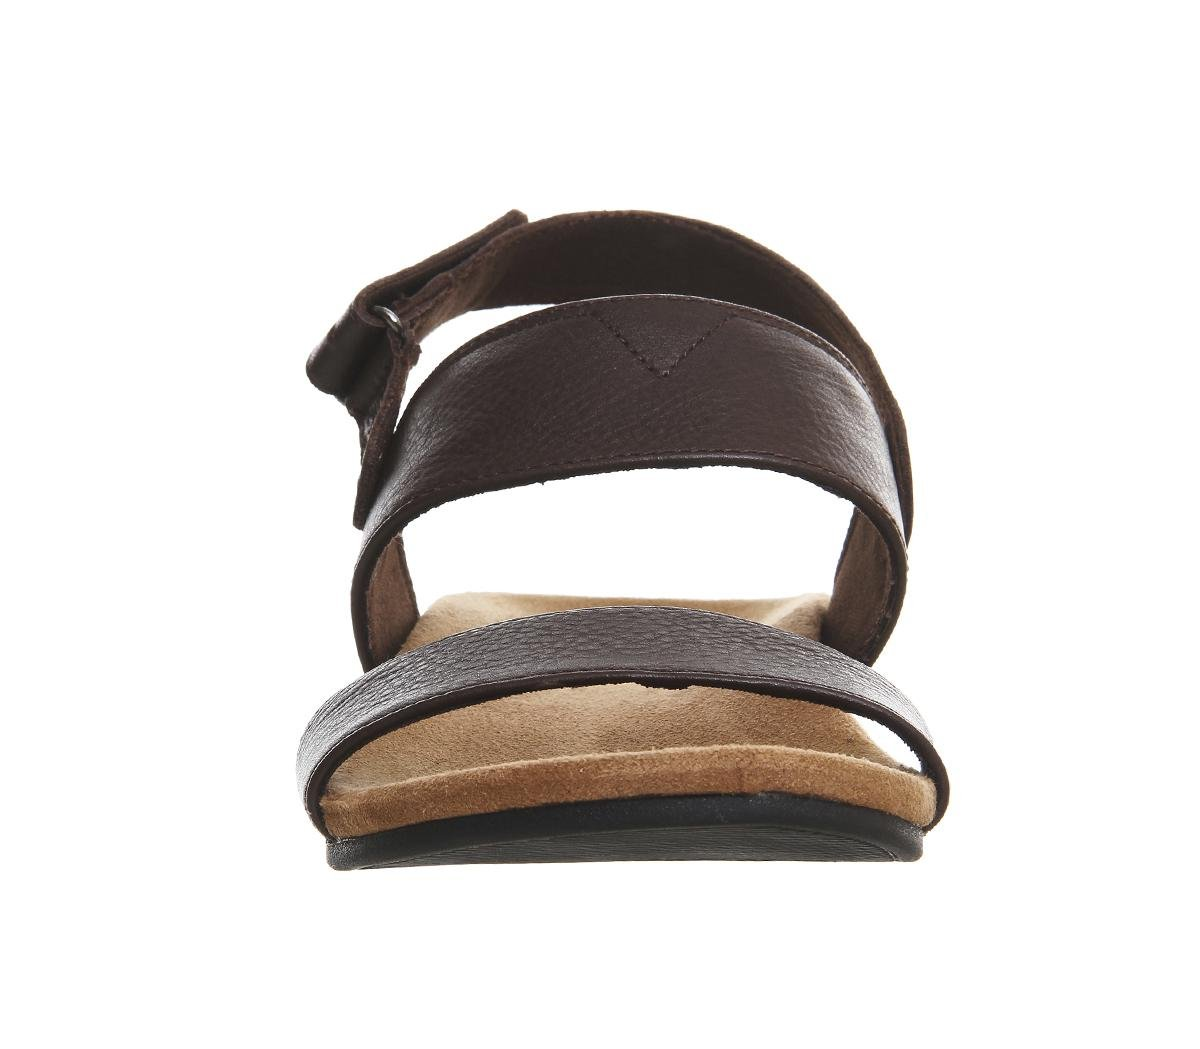 58e07bb84fe2d Lyst - TOMS Moreno Sandals in Brown for Men